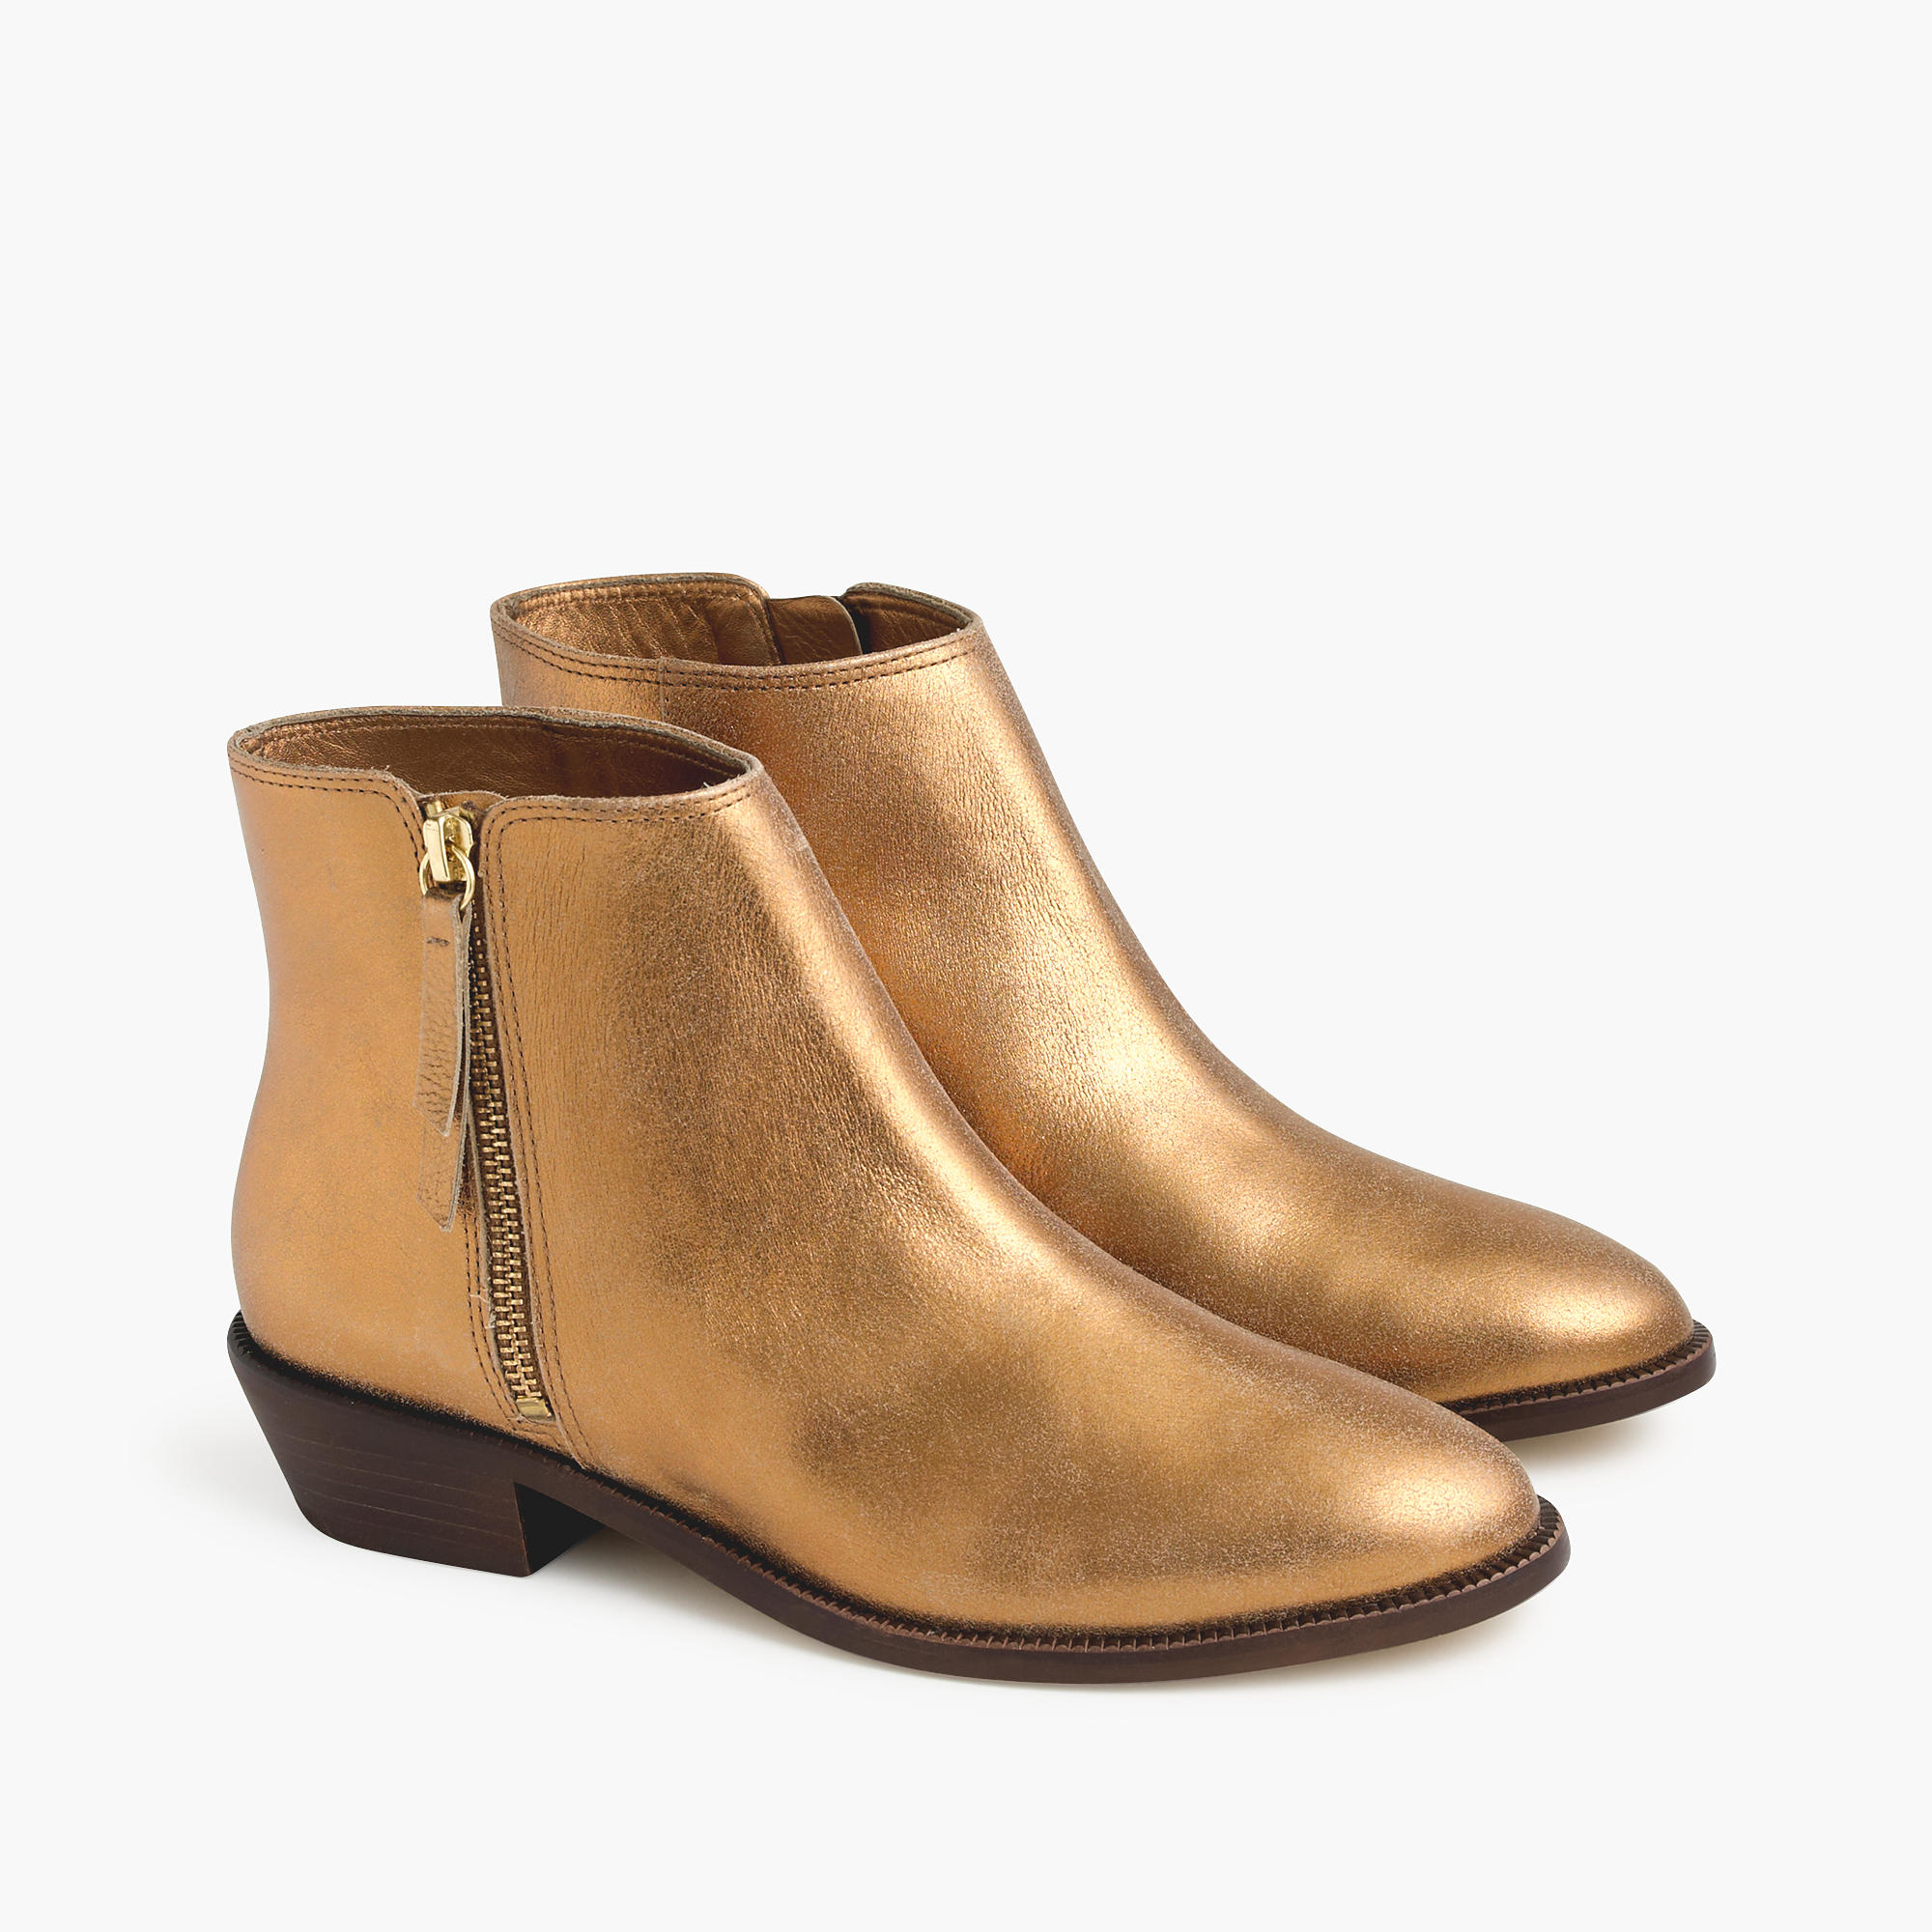 J.crew Frankie Ankle Boots In Dark Gold in Metallic | Lyst